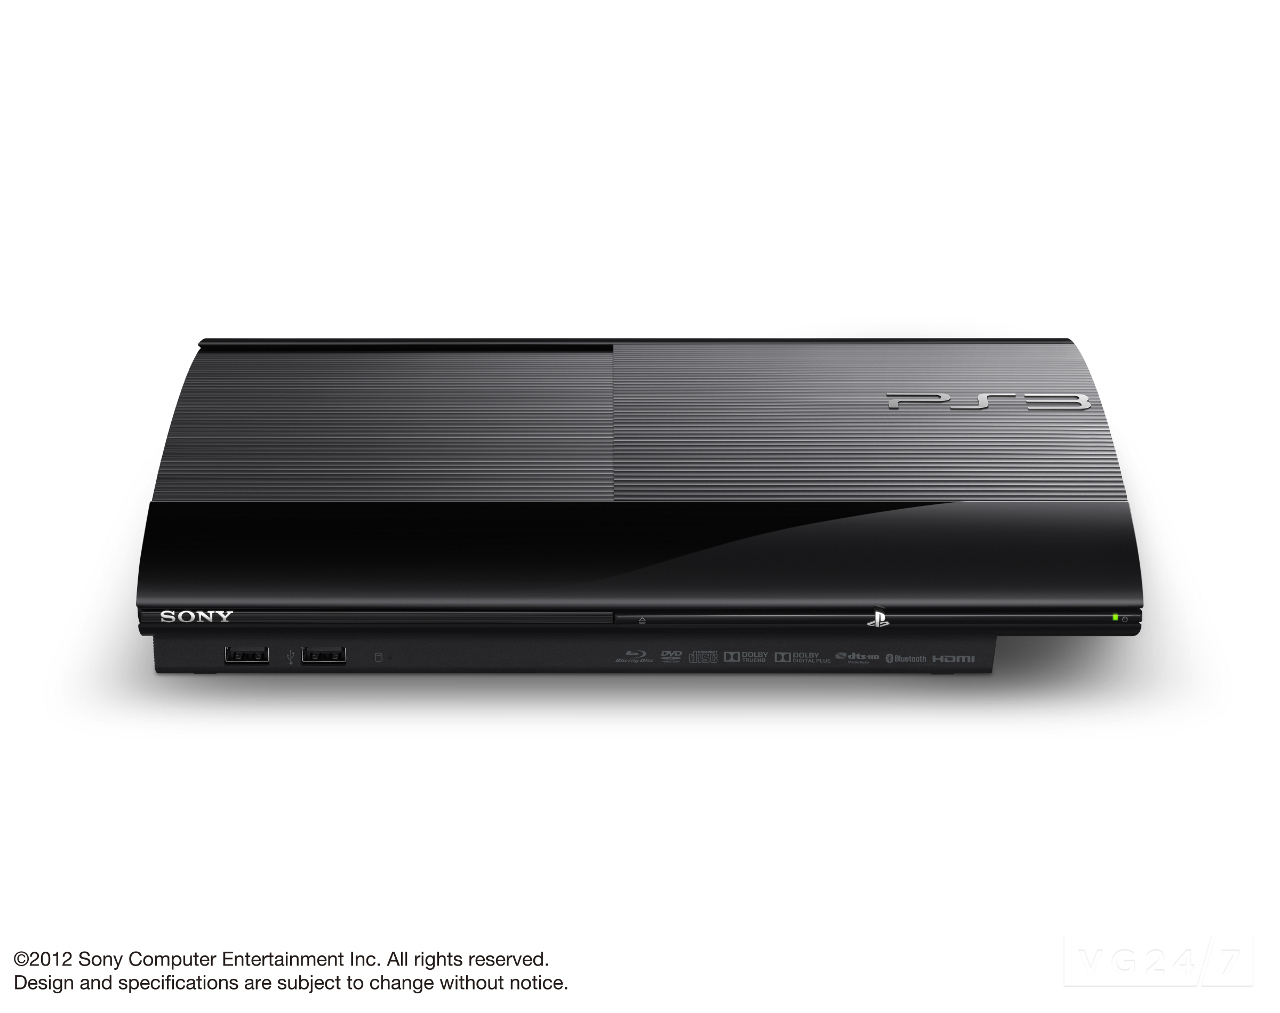 PS3 Super Slim Official Console Photos See Them Here VG247